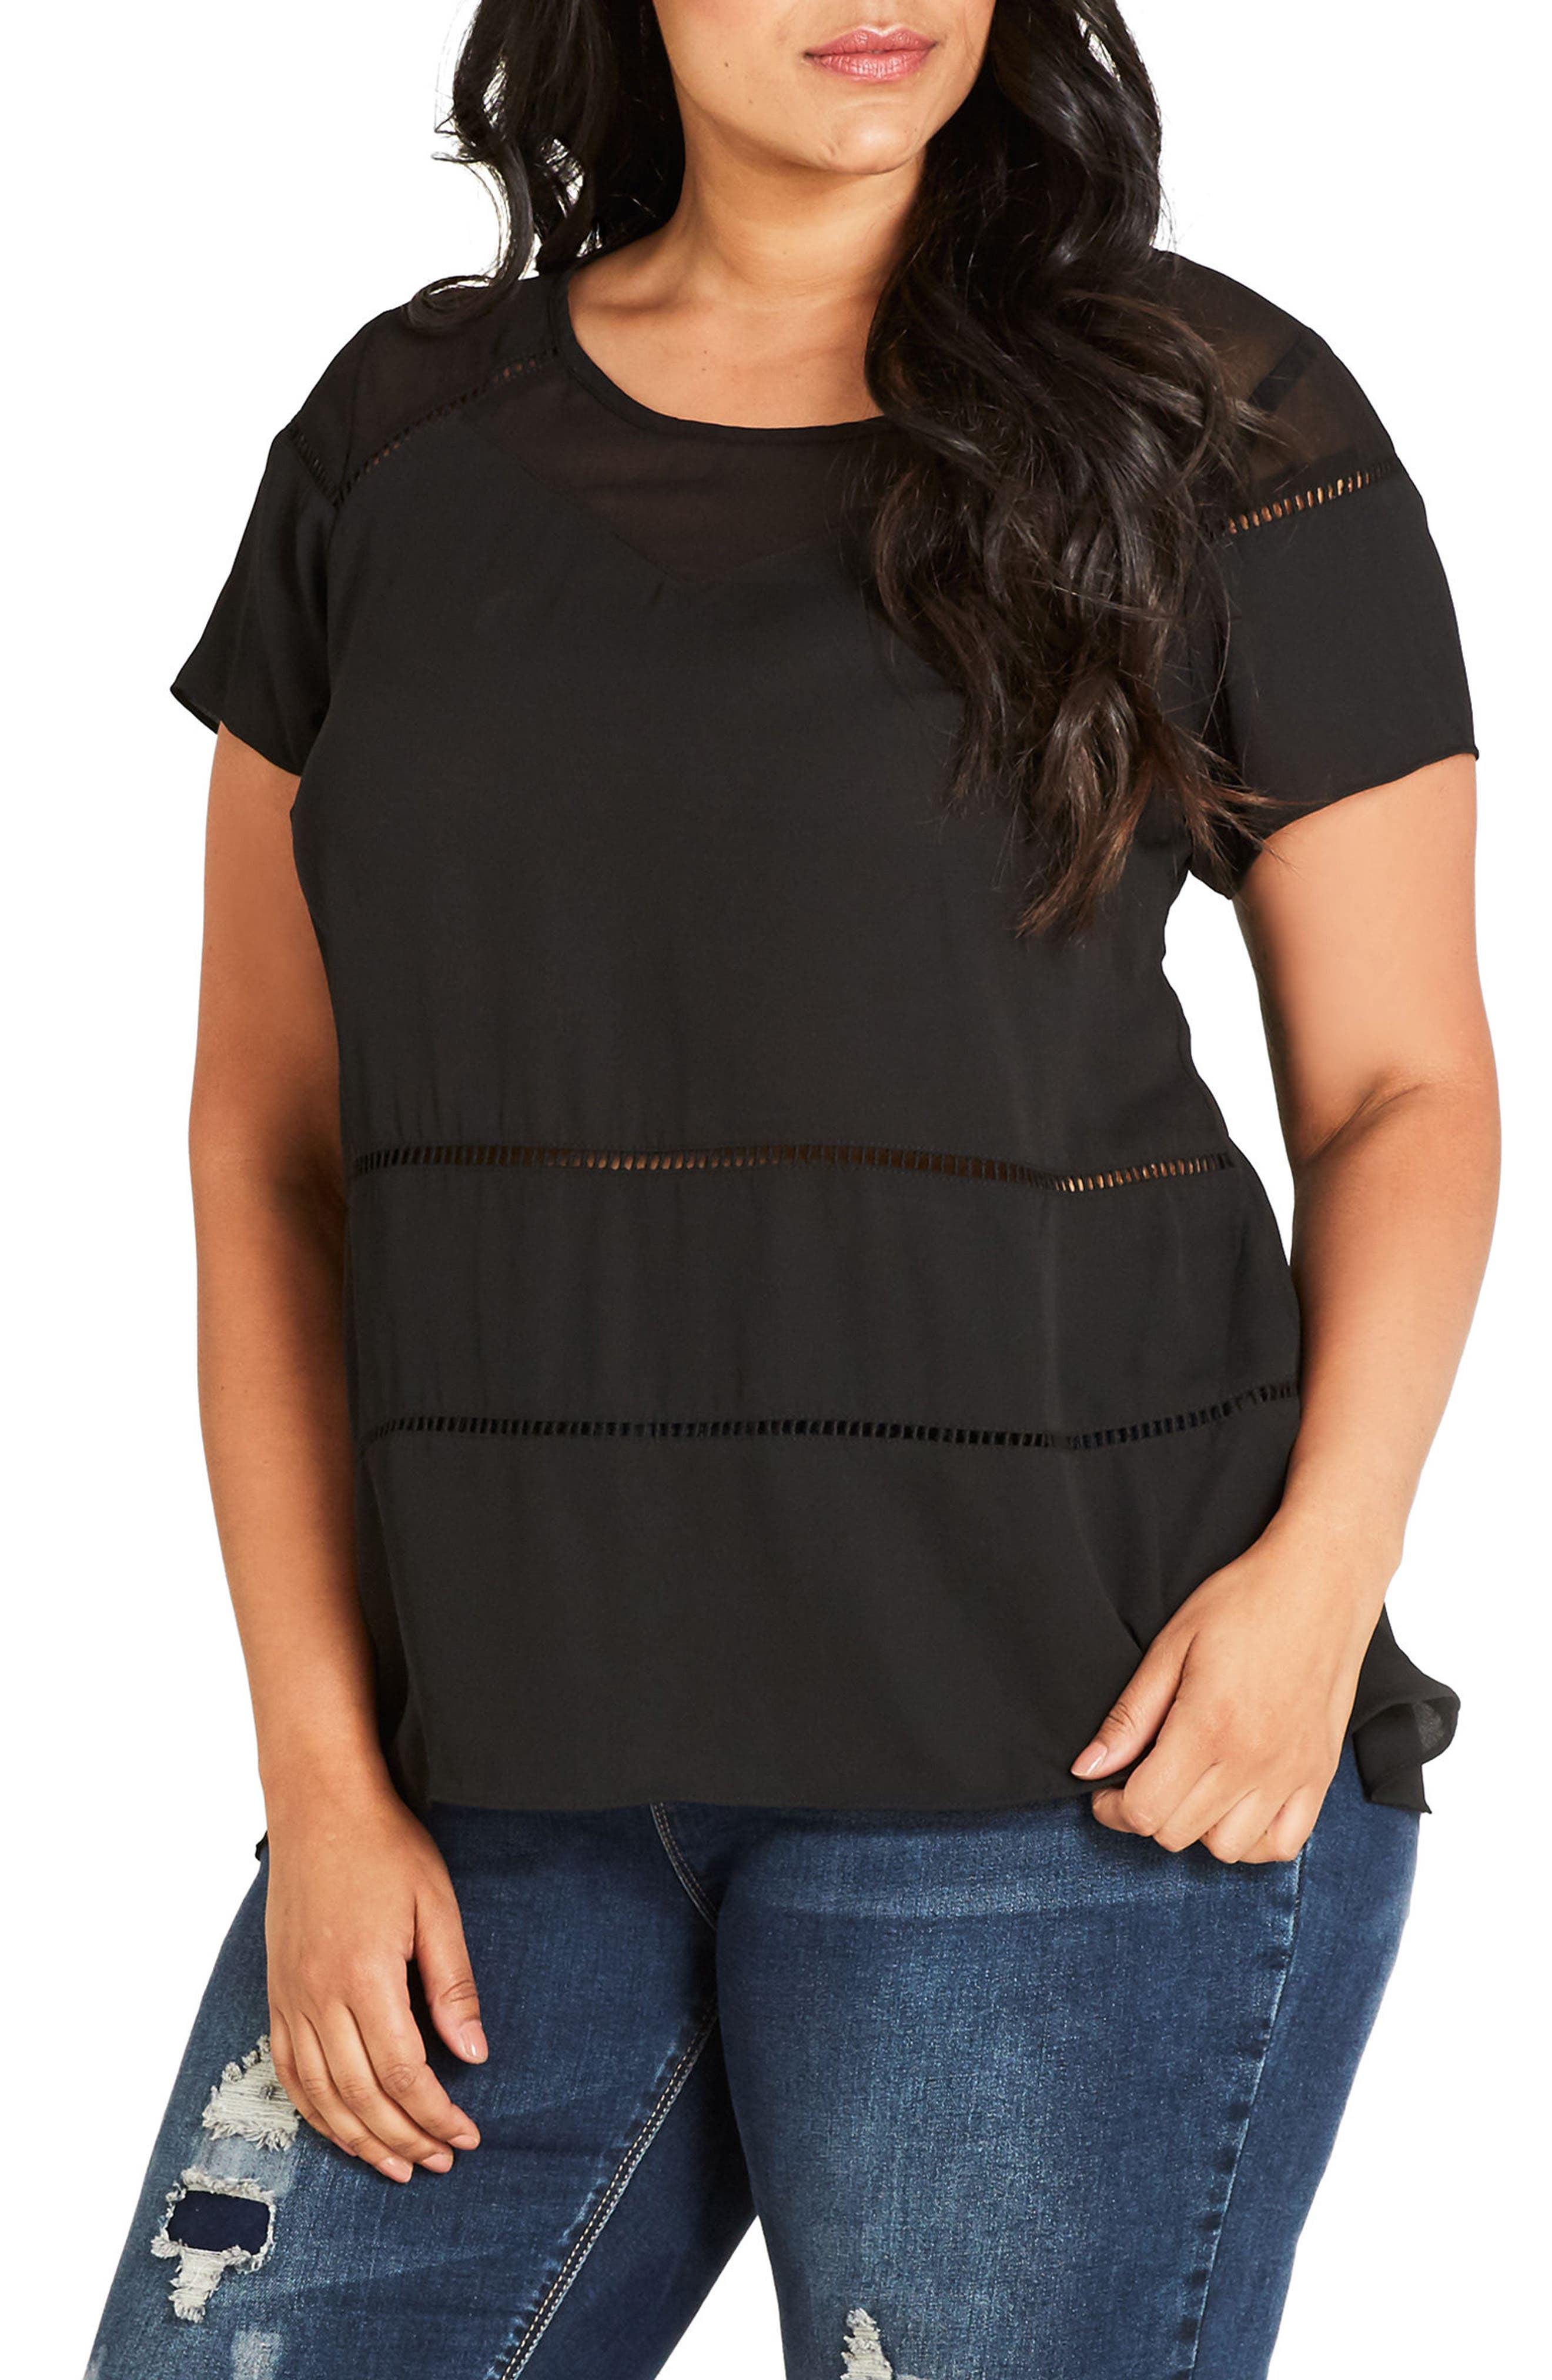 Main Image - City Chic Night Out Top (Plus Size)